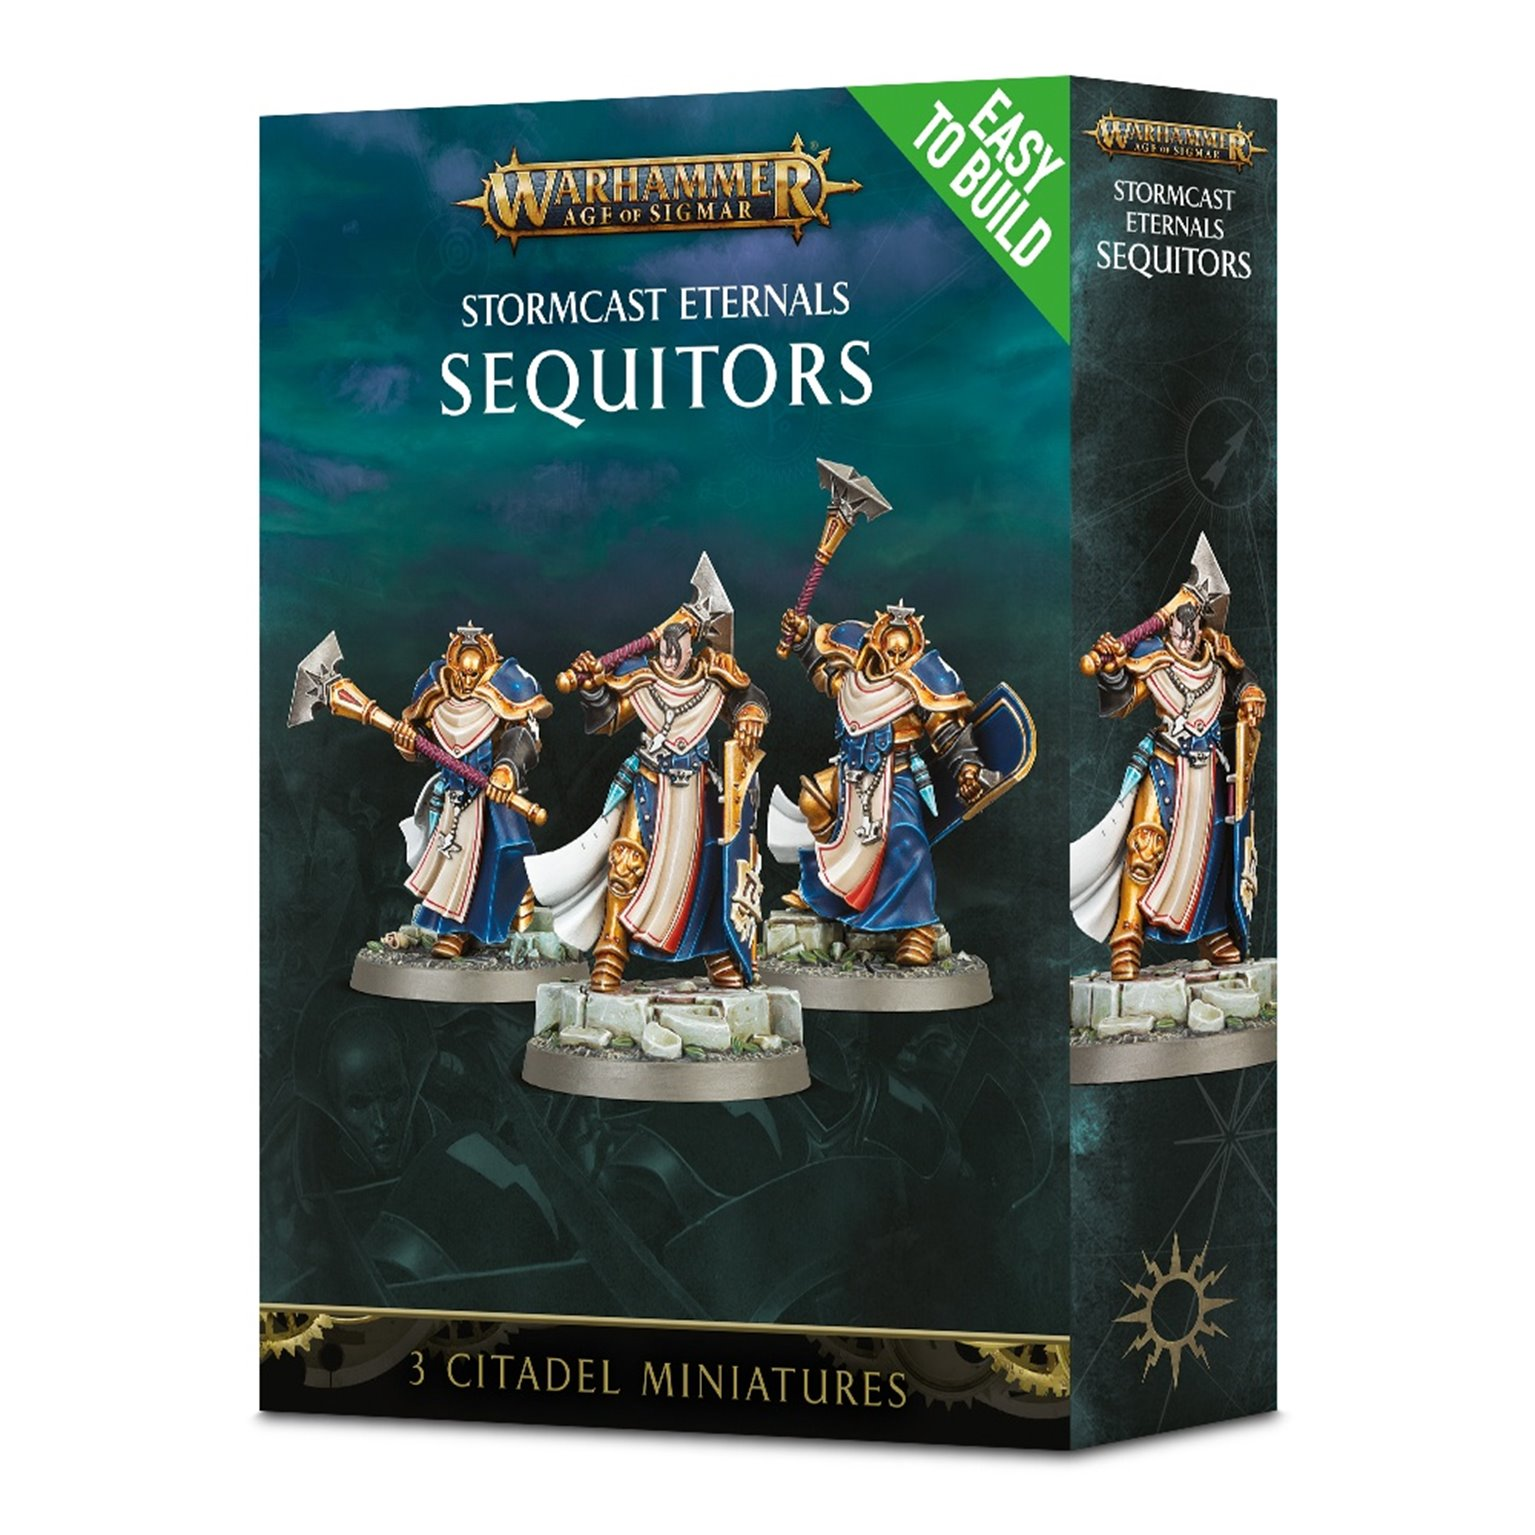 Warhammer Age of Sigmar Stormcast Eternals Sequitors